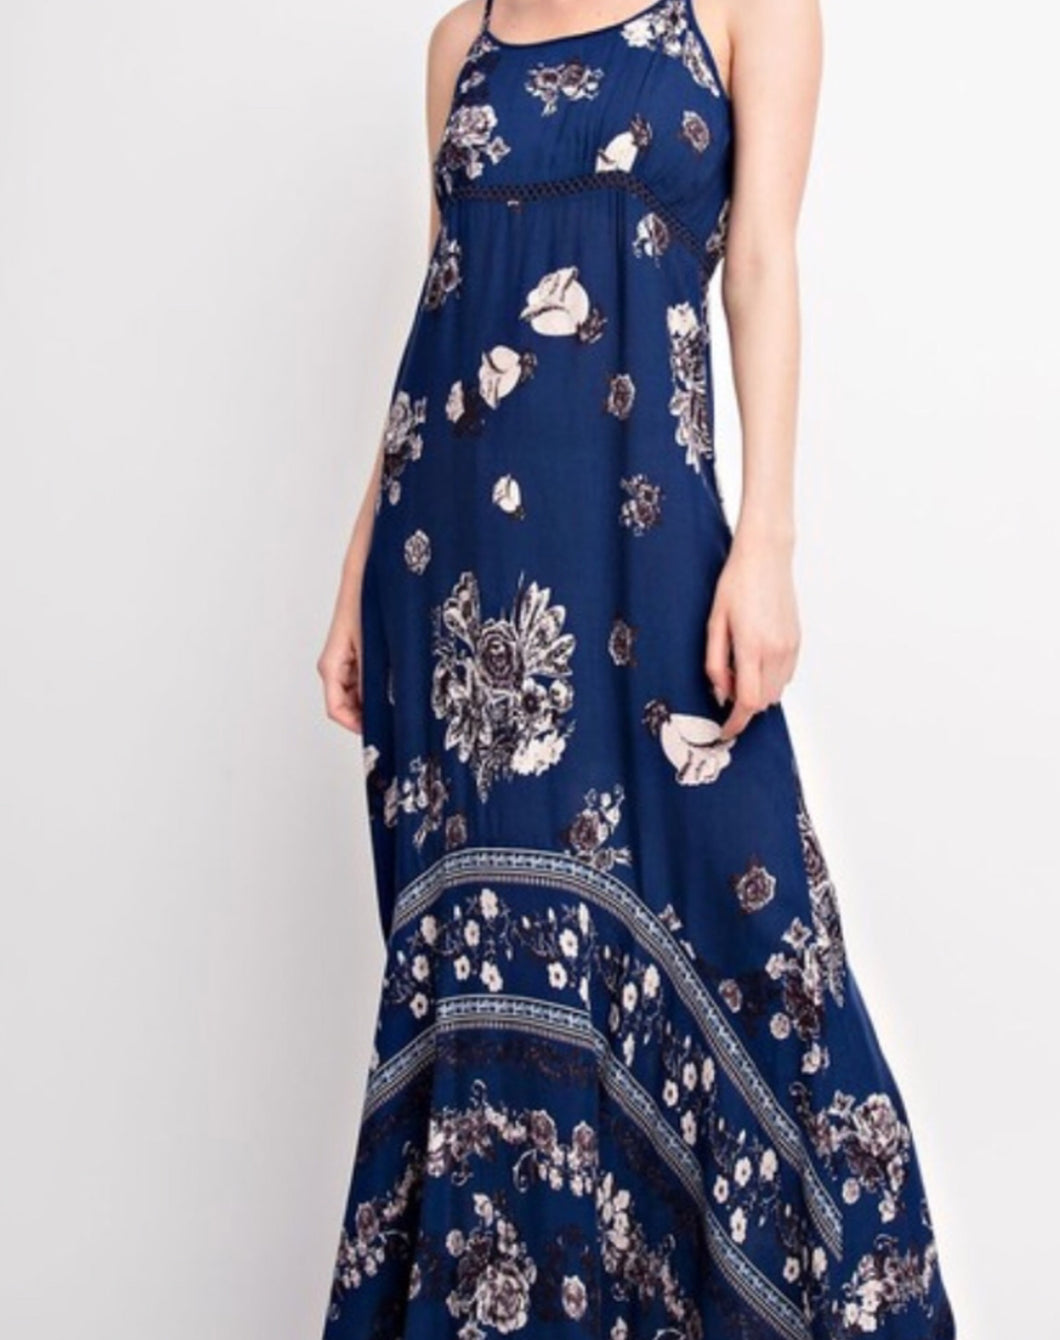 Navy Ivory Floral Print Spaghetti Strap Maxi Dress